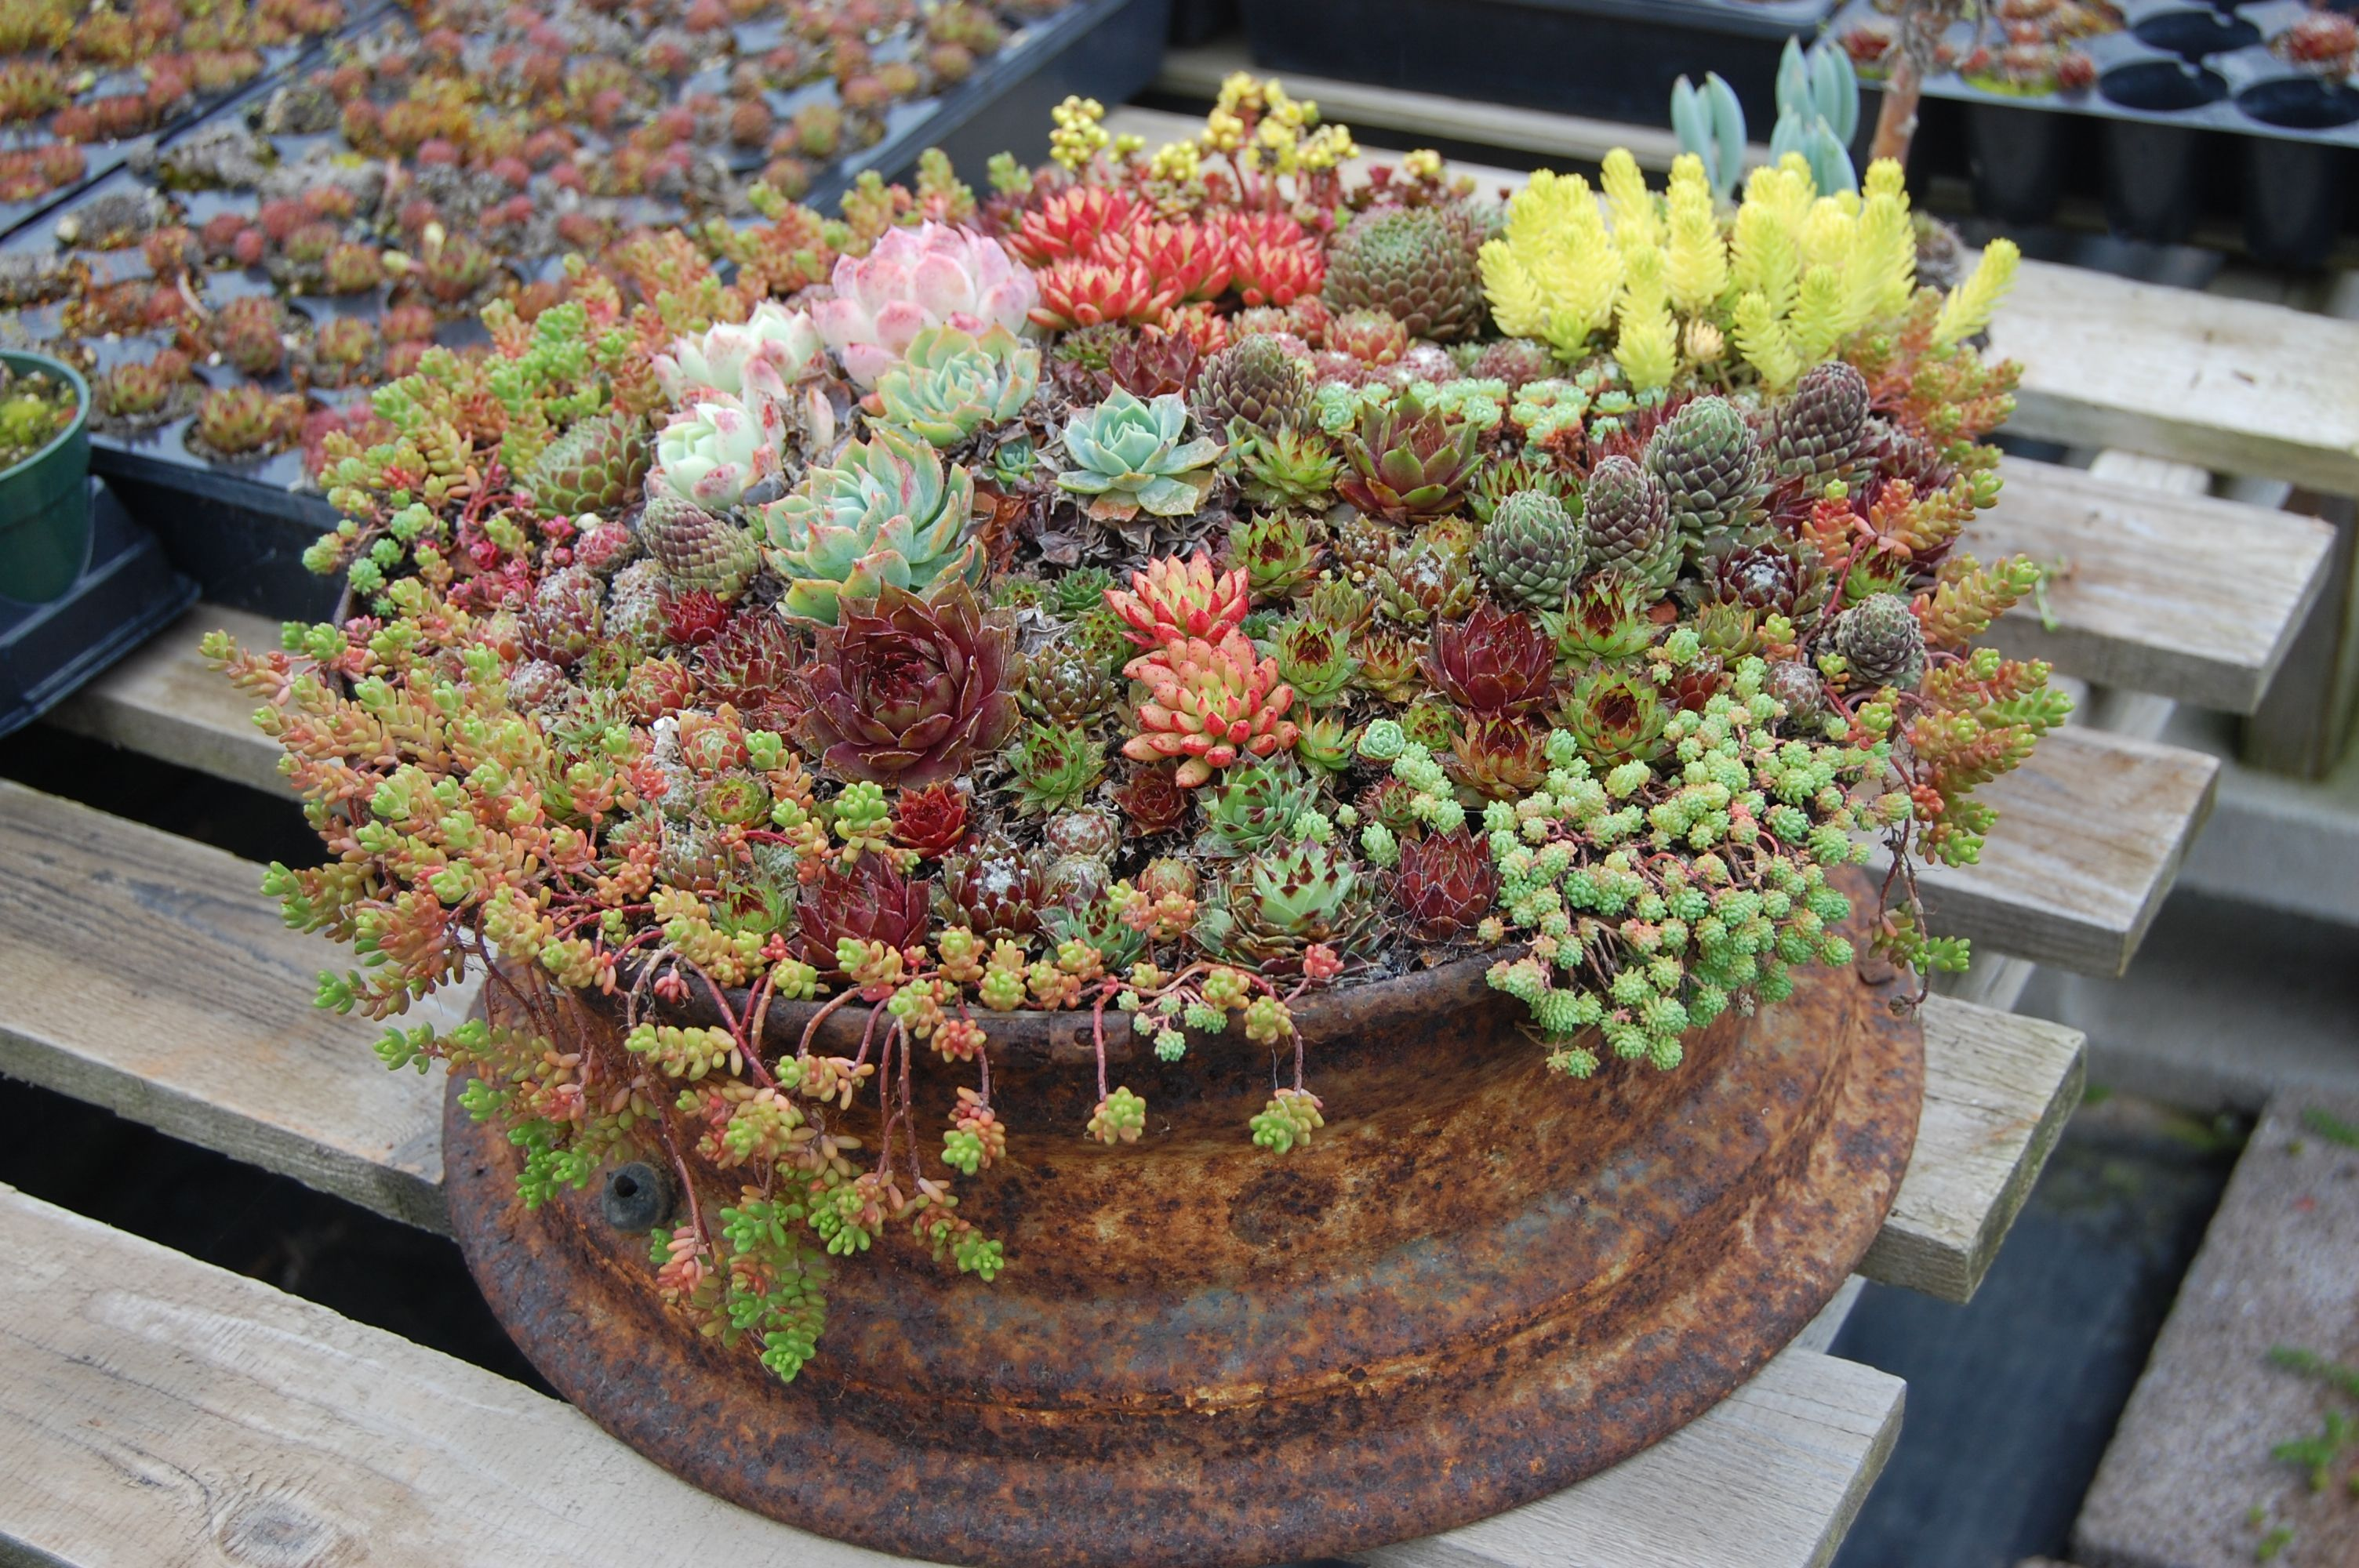 Could Use An Old Tire Rim For This Succulent Garden. See Next Pin, For  Doing A Mosiac Finish Around Sides Of Tire Rim.